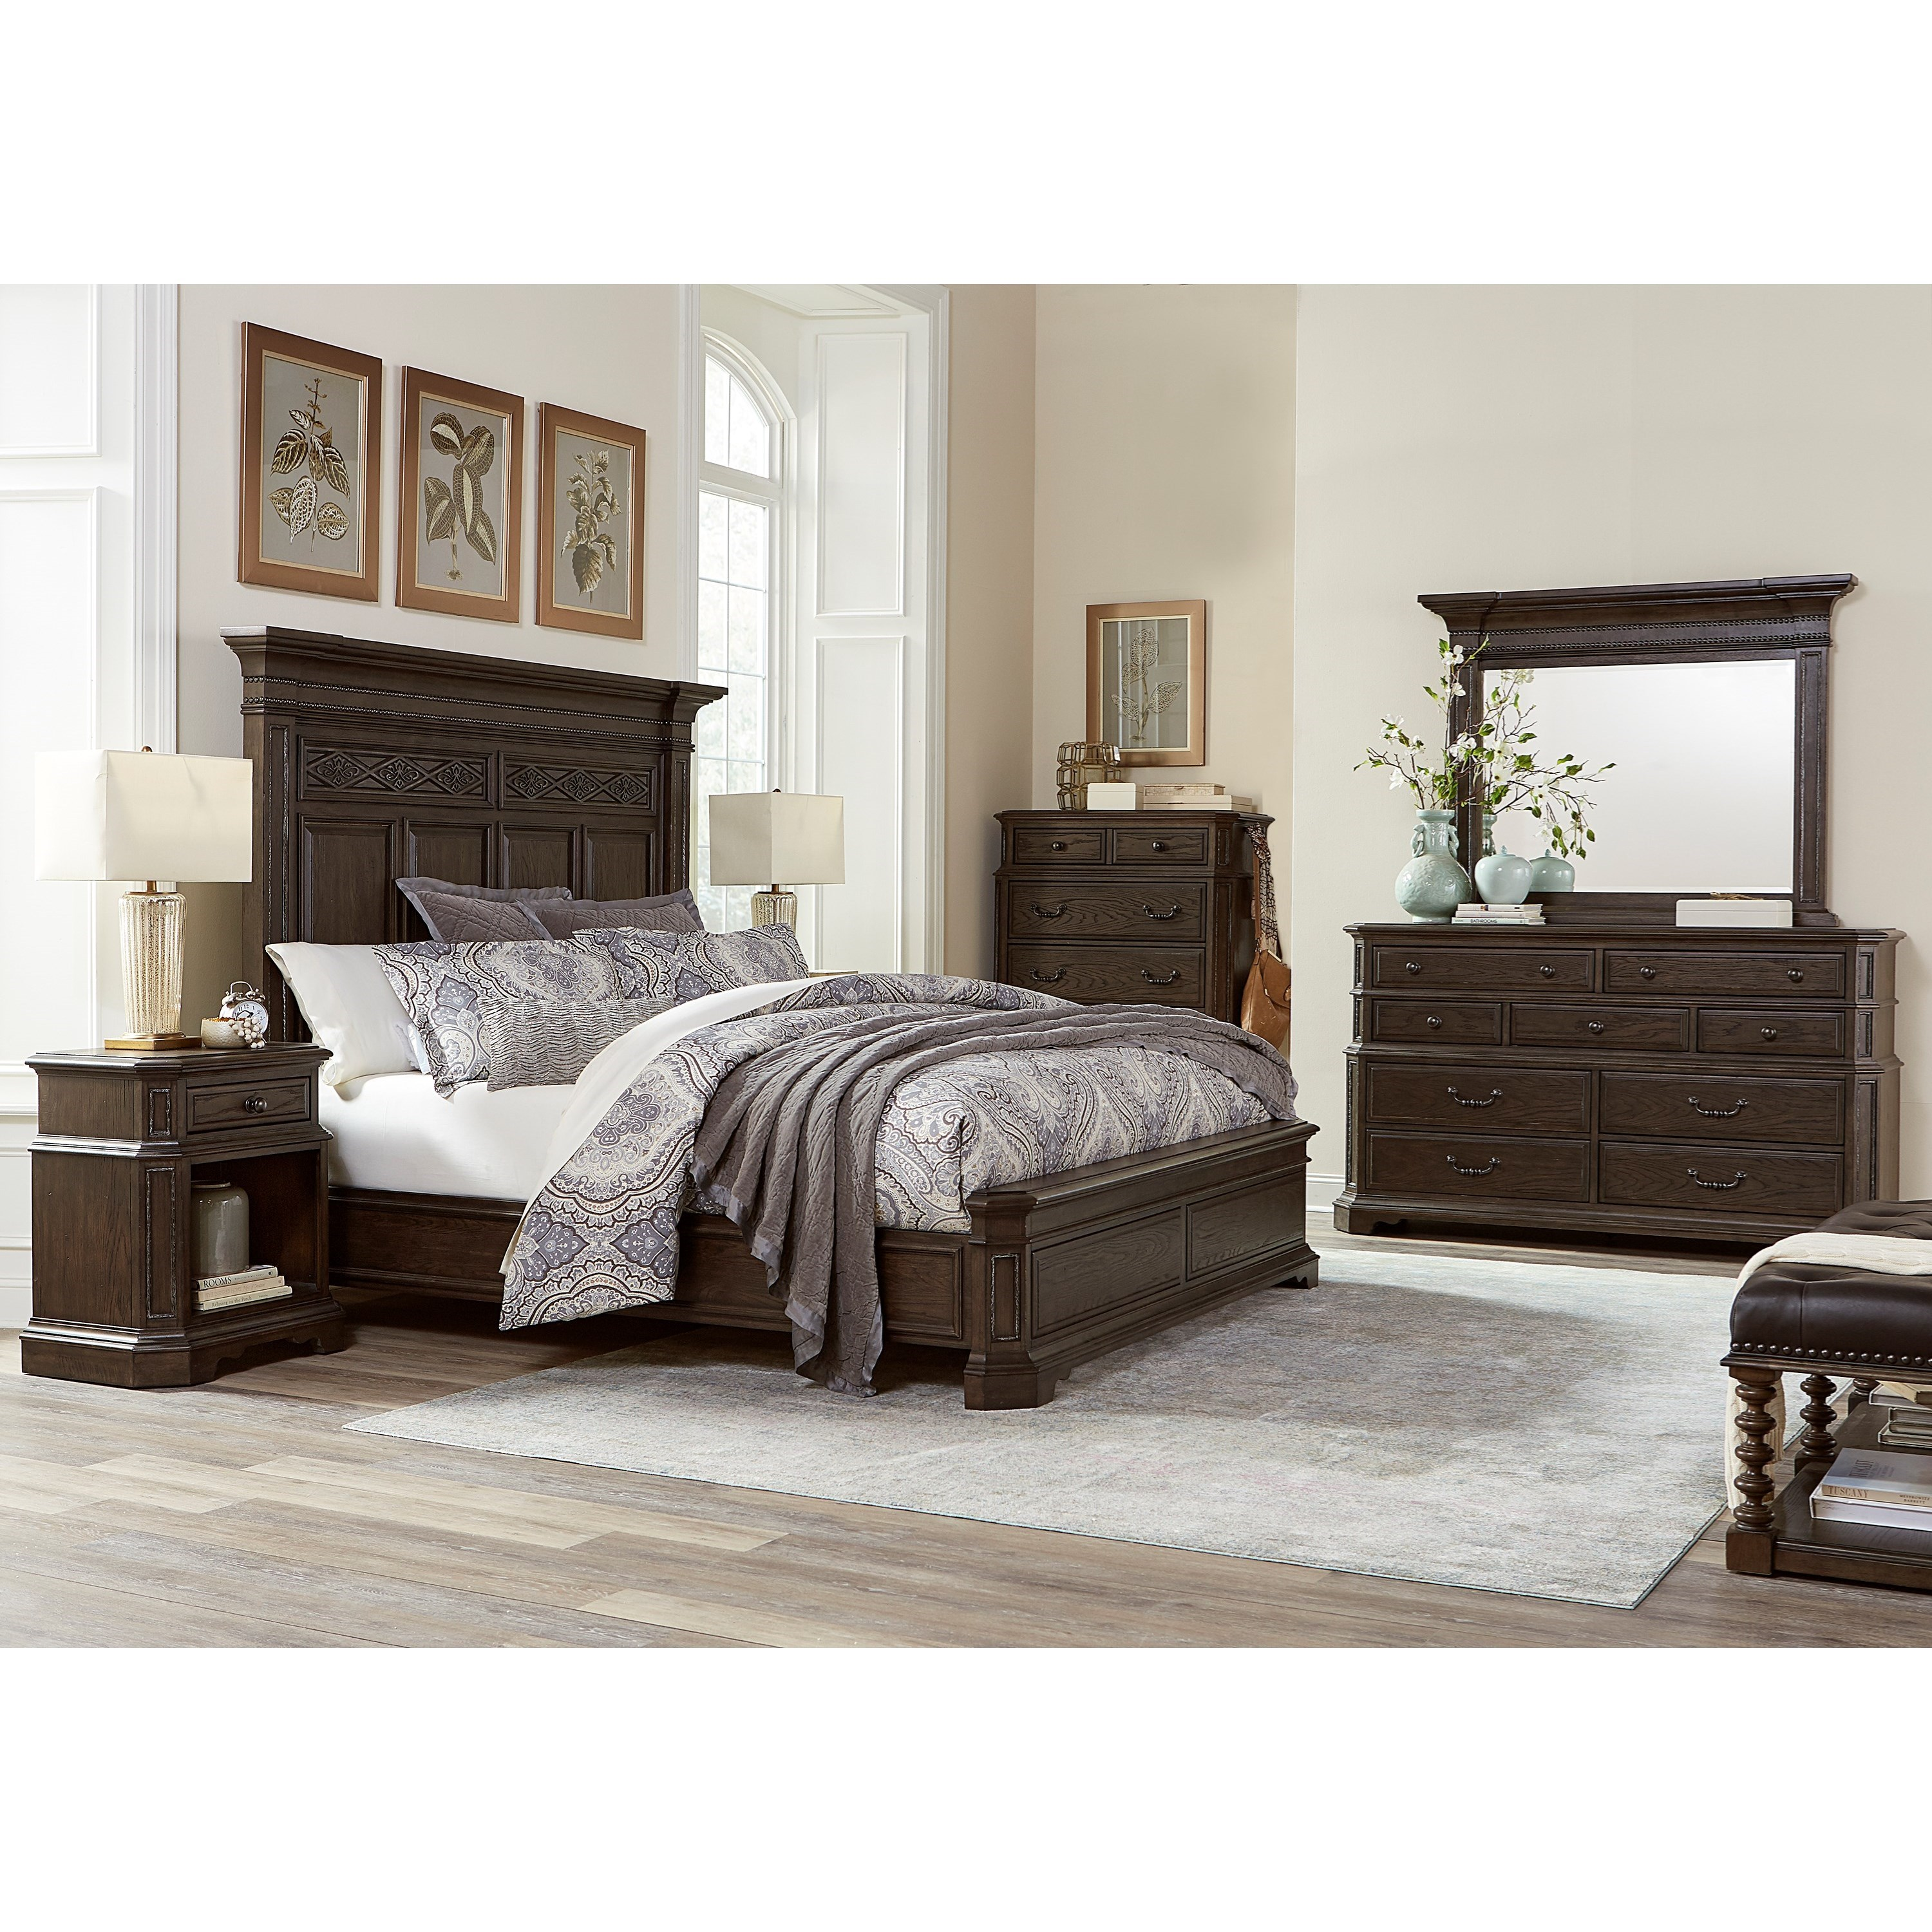 Foxhill Queen Bedroom Group by Aspenhome at Walker's Furniture